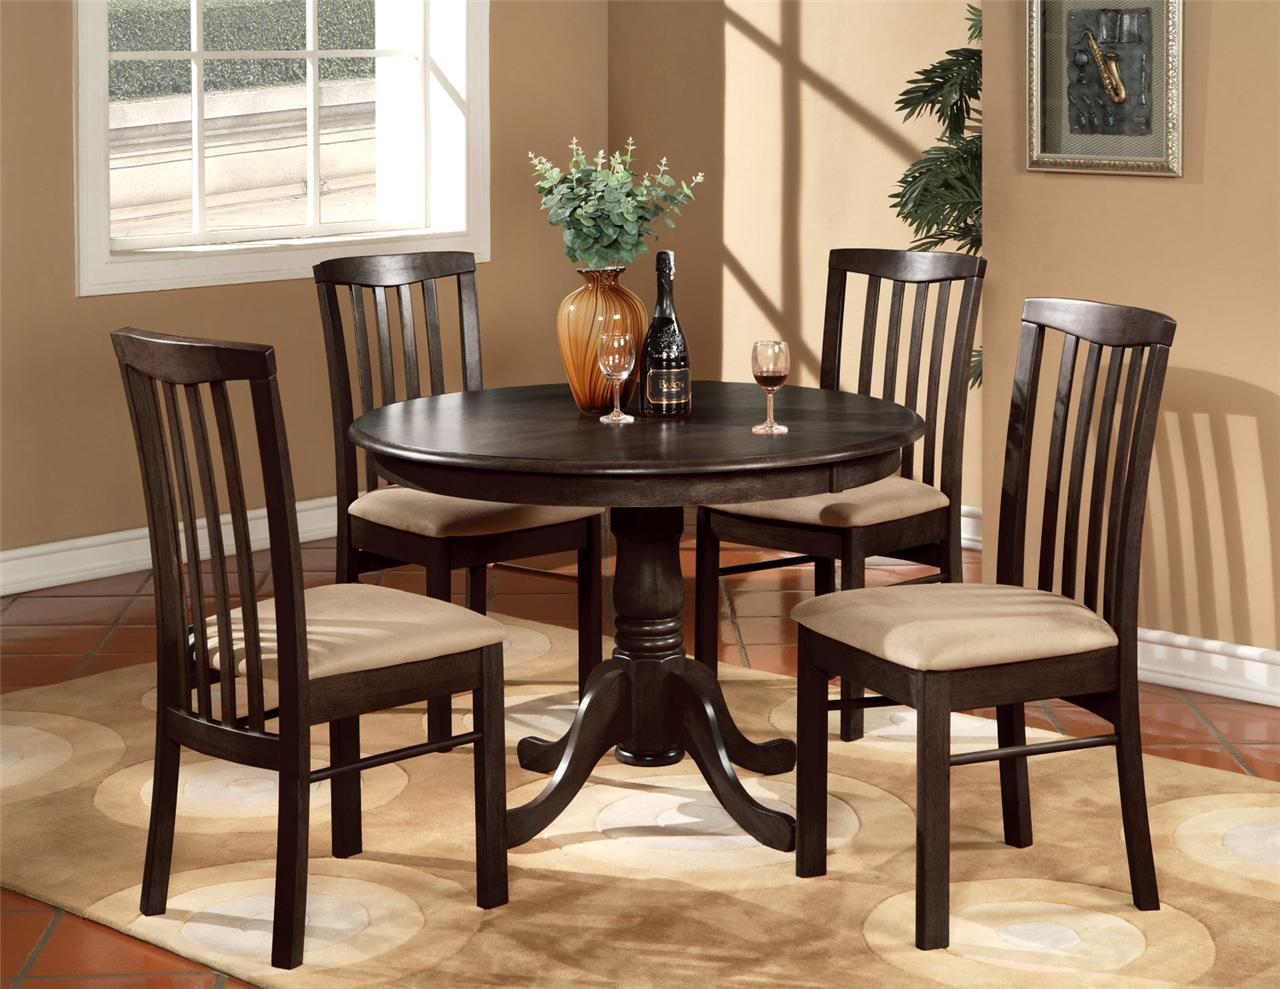 Great Small Round Kitchen Table Set 1280 x 989 · 160 kB · jpeg